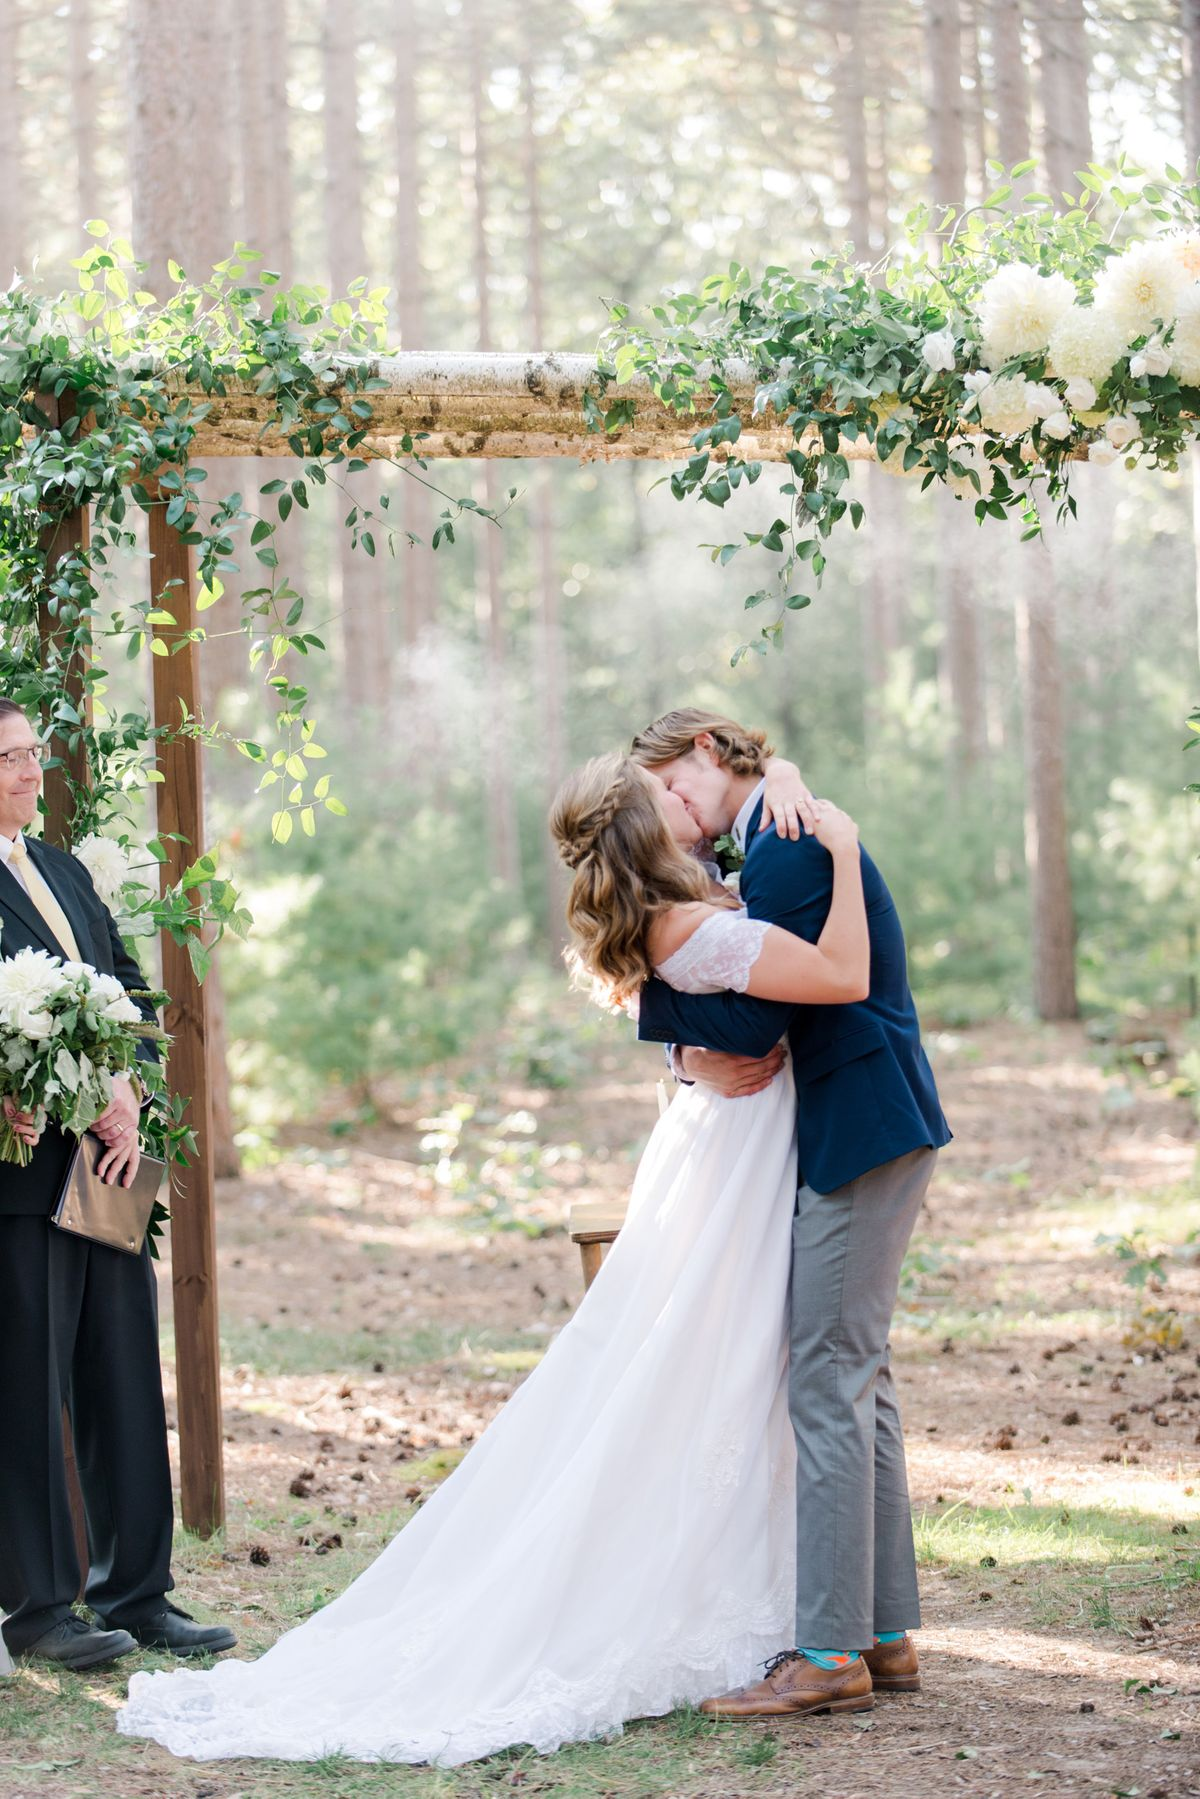 Bride and Groom Kissing Outdoors - CampBride